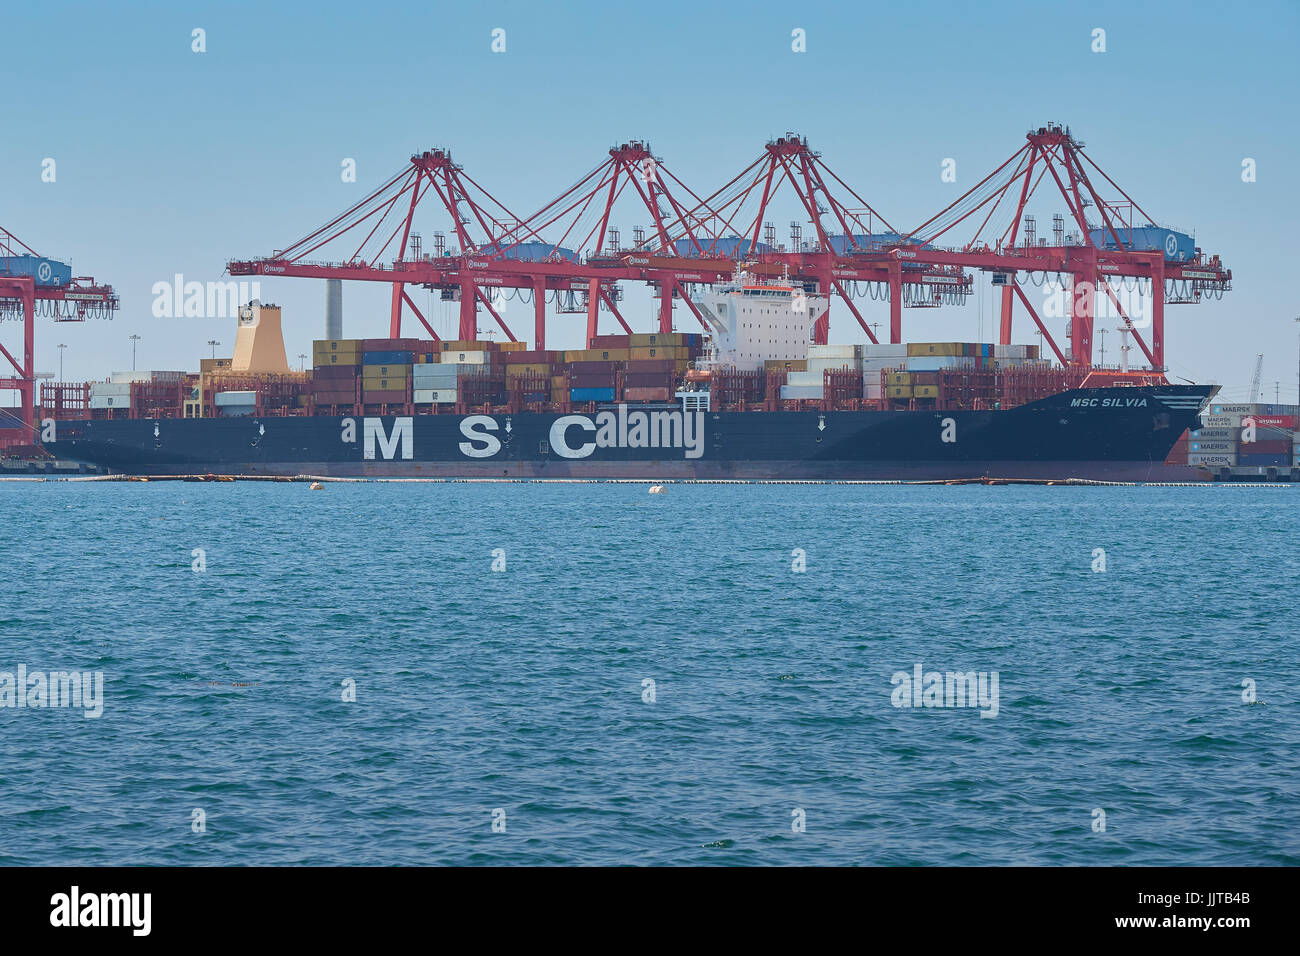 the giant mediterranean shipping company container ship msc silvia